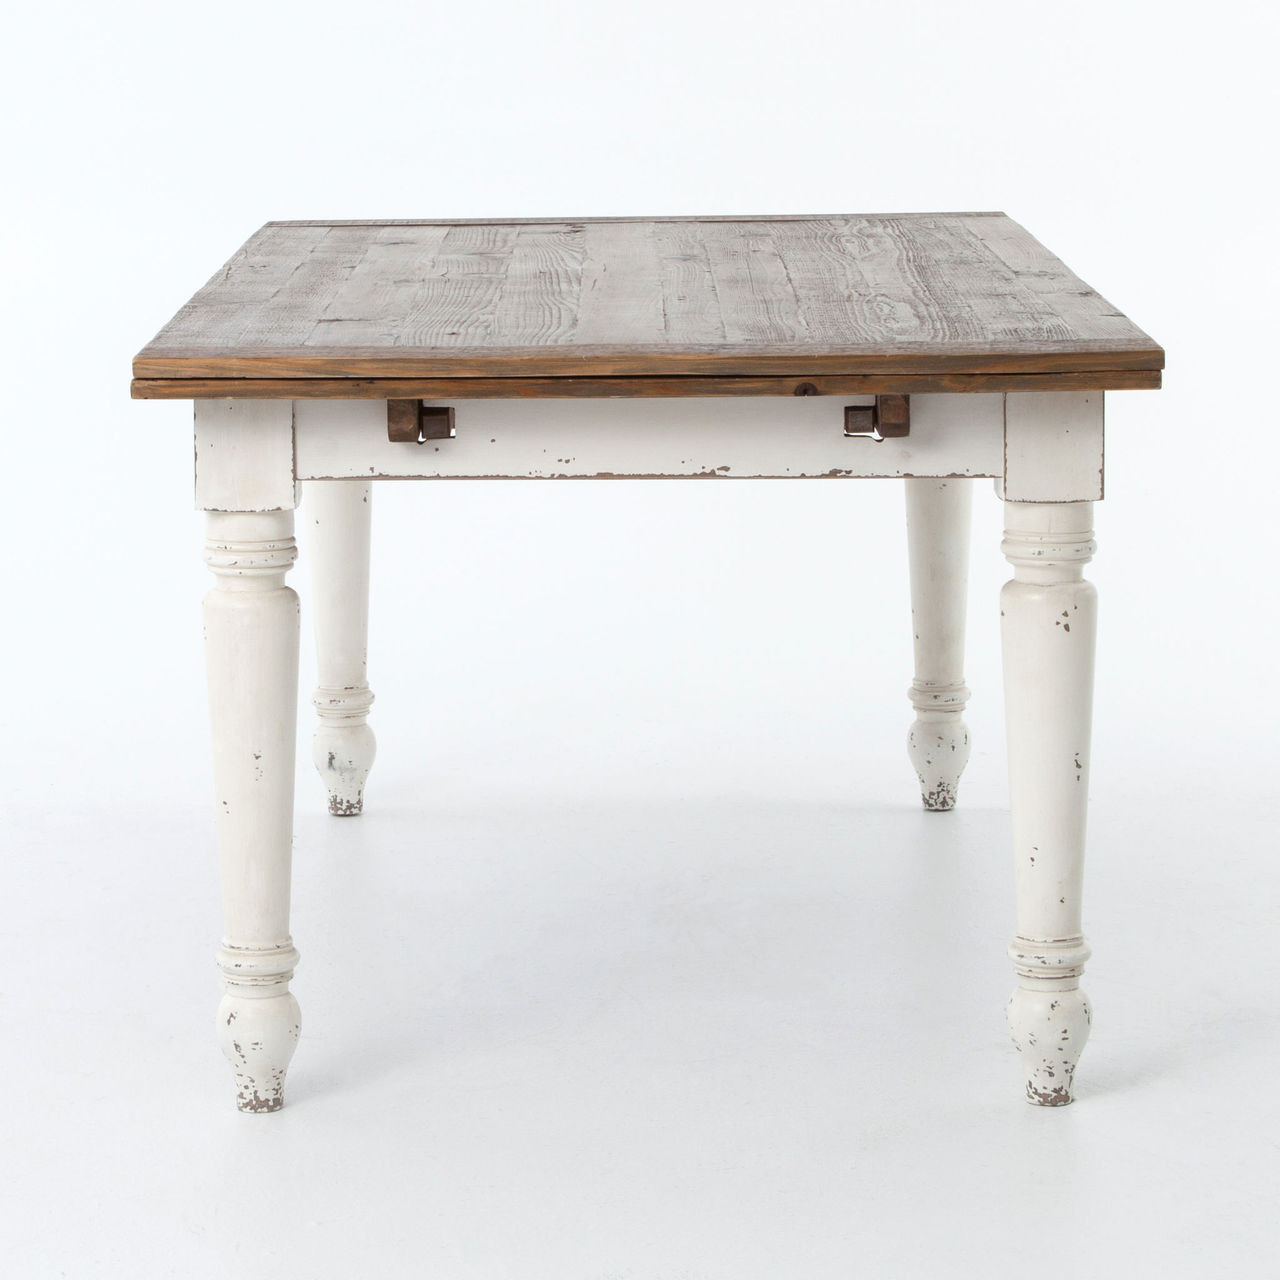 Cottage Reclaimed Wood White Expanding Dining Table 72 110  : Cottage72ReclaimedWoodWhiteExpandingDiningTable270487143318192212801280 from www.zinhome.com size 1280 x 1280 jpeg 98kB